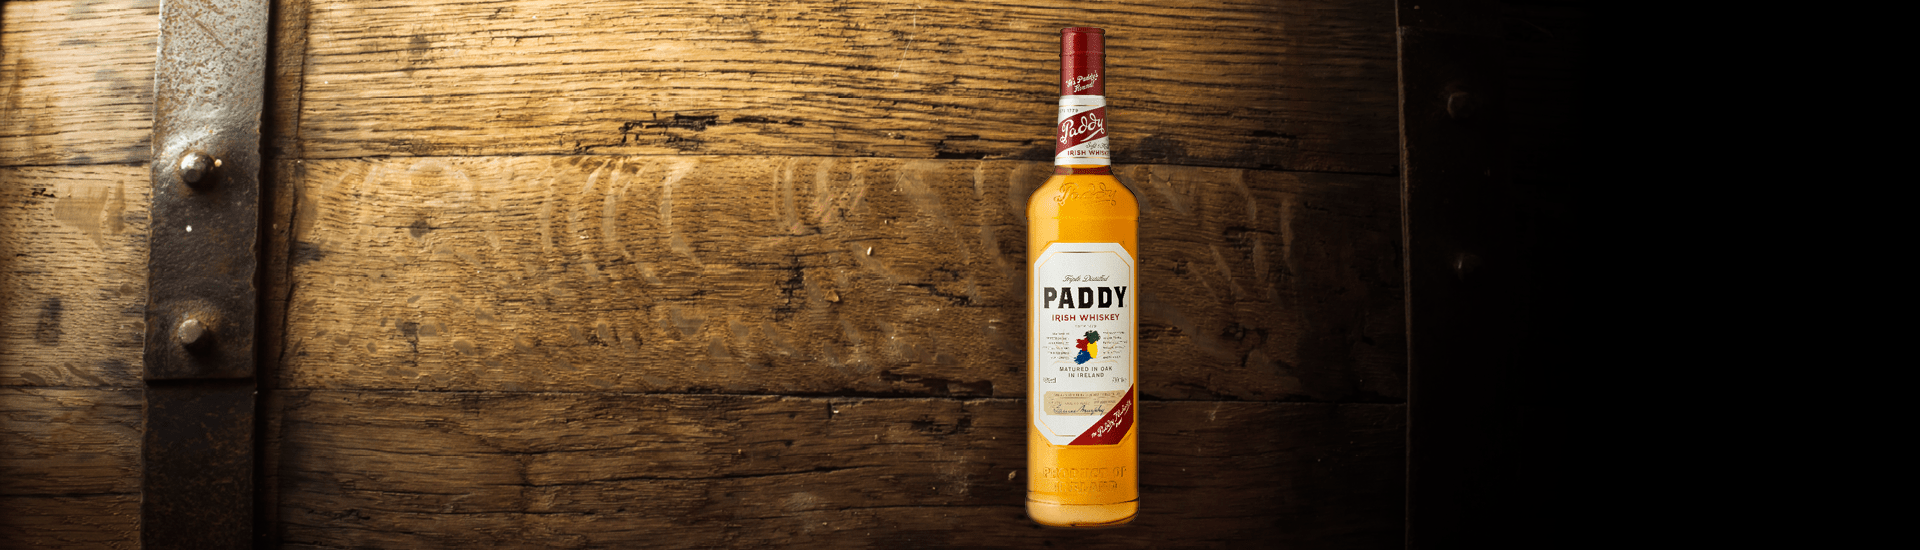 Hi-Spirits to distribute Paddy Irish Whiskey in the UK